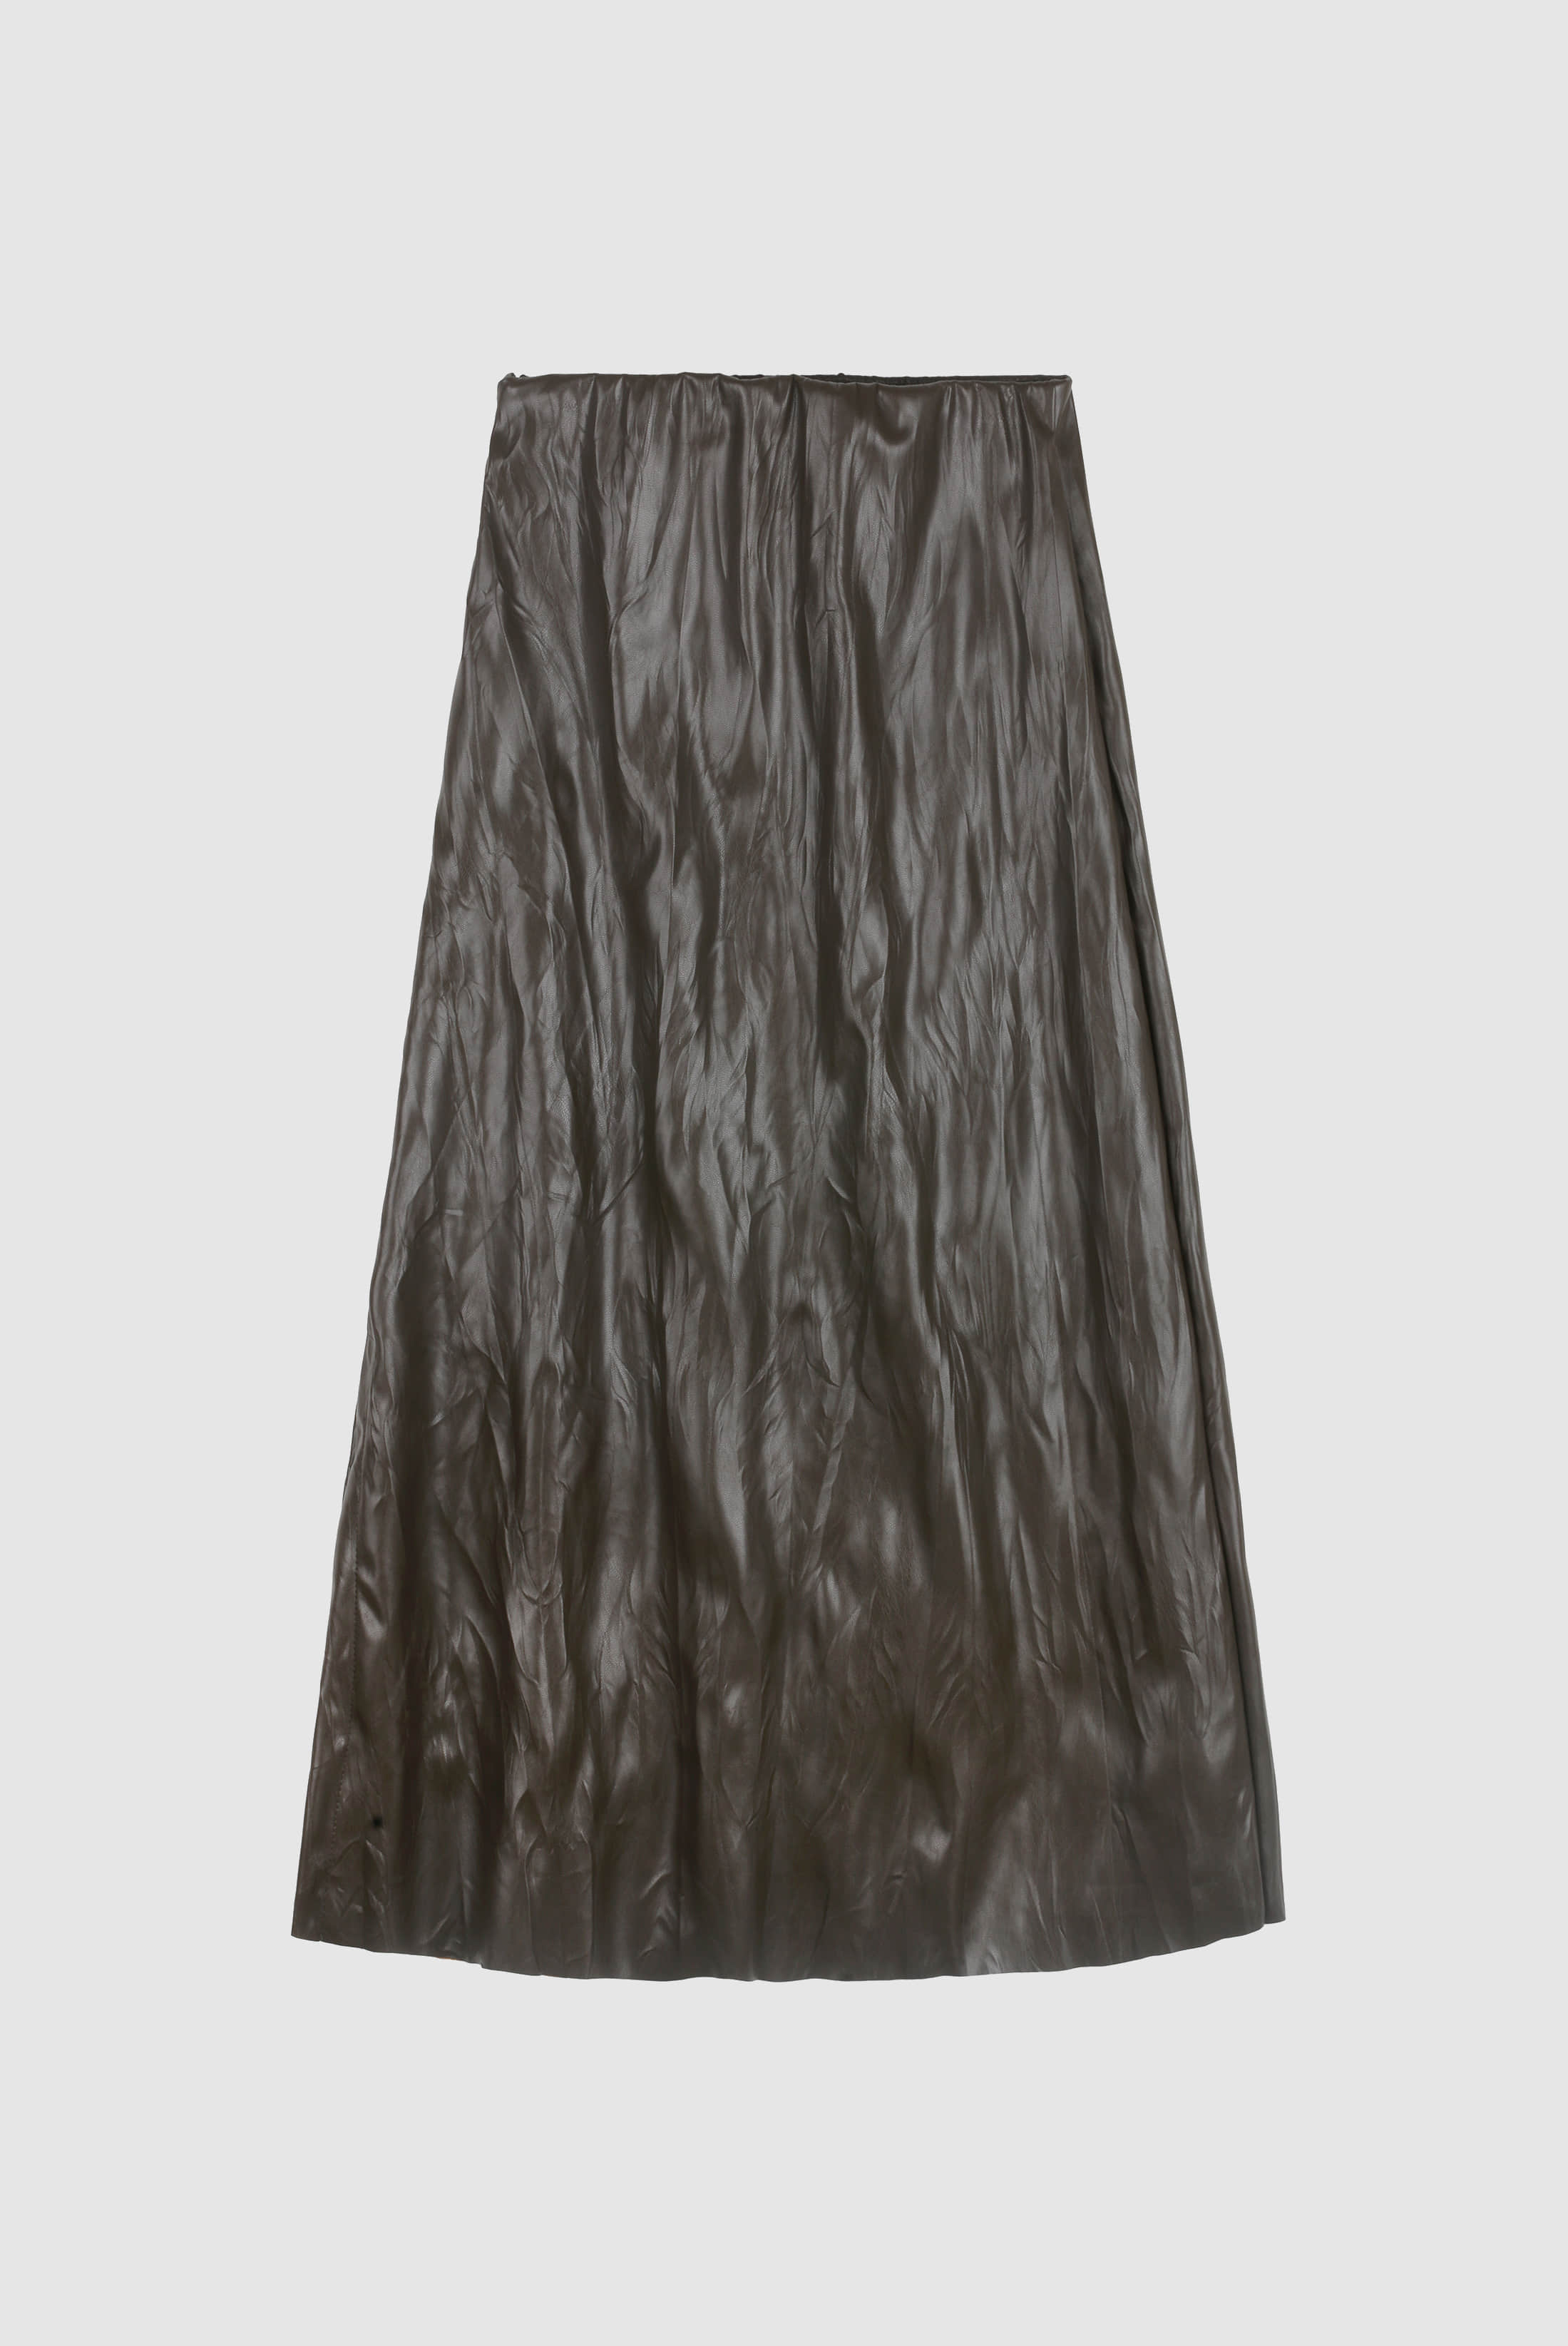 (W) Trunk_Wrinkle Leather Skirt